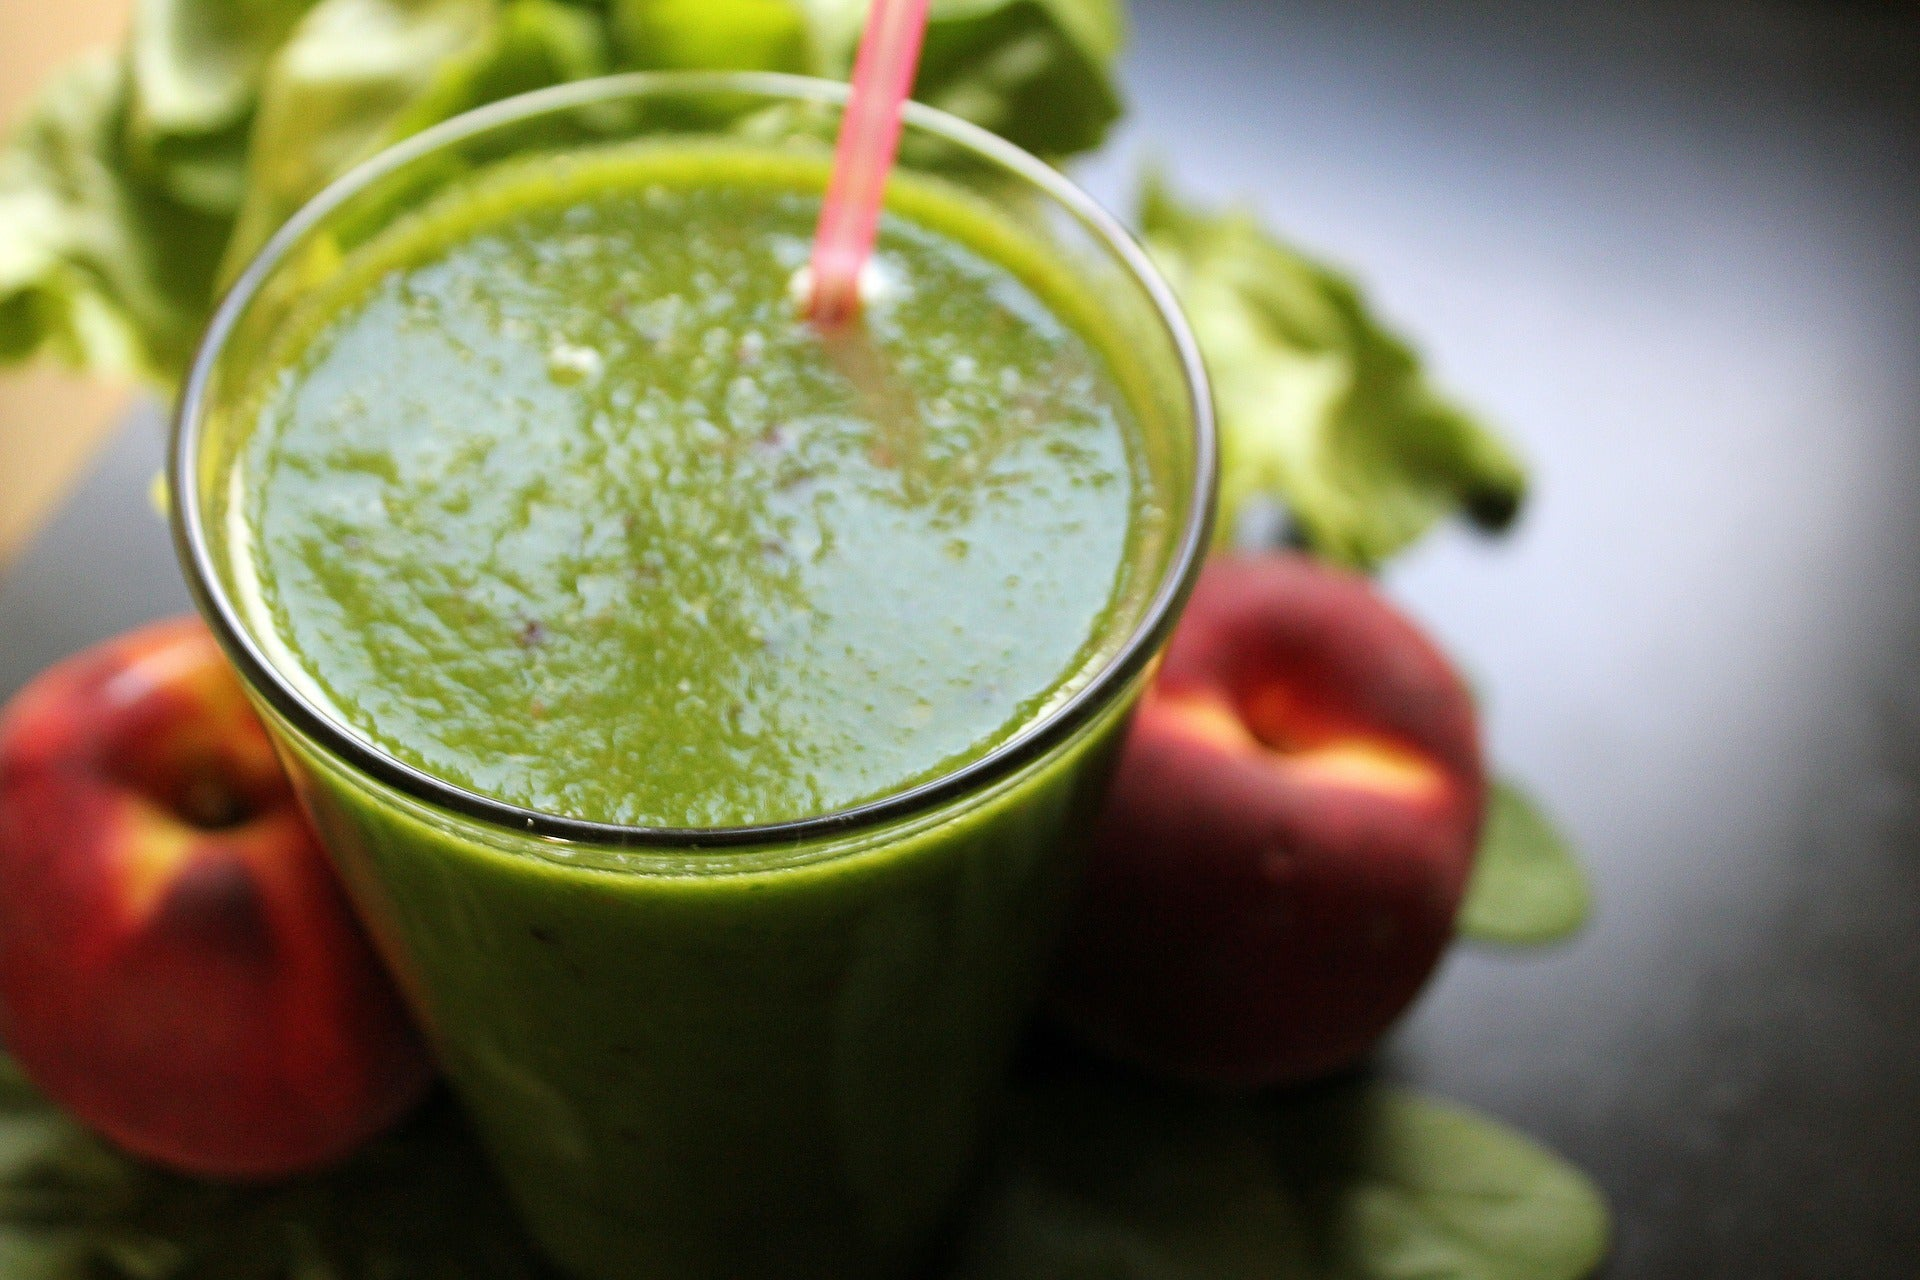 Get Glowing Green Recovery Smoothie